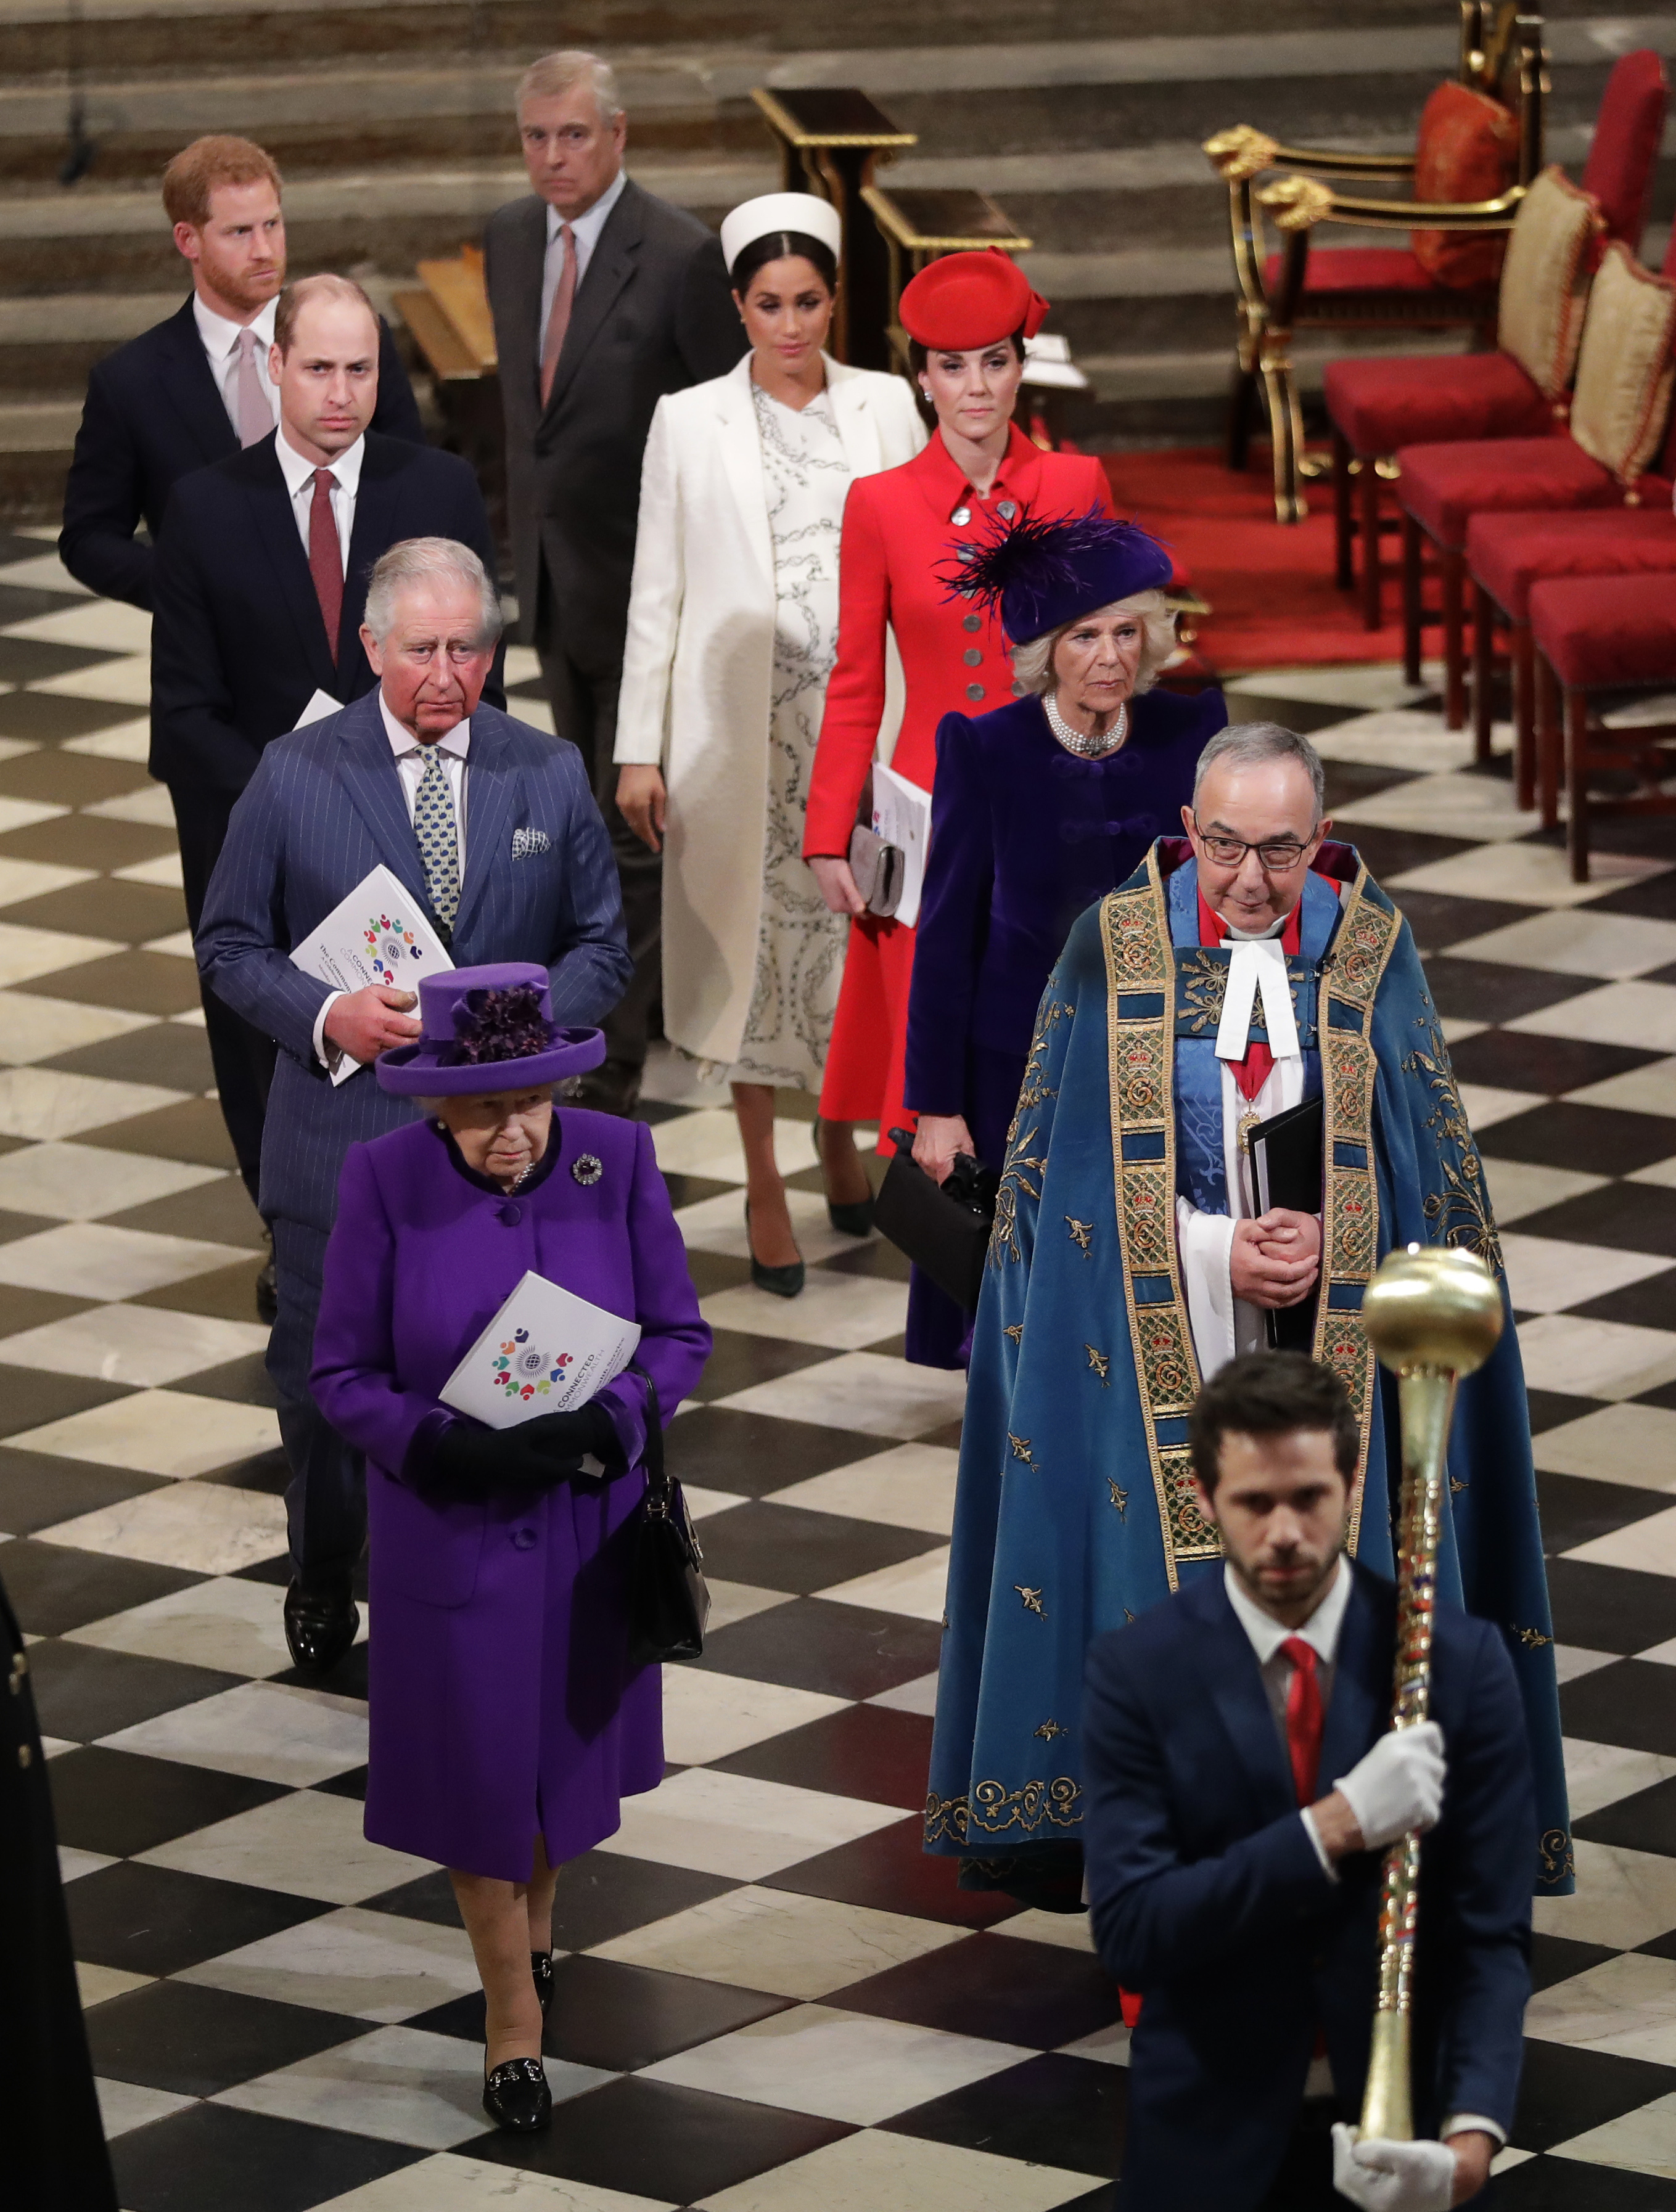 File photo dated 11/03/19 of the Royal family leaving after the Commonwealth Service at Westminster Abbey, London. The Duke and Duchess of Sussex will join the Queen, the Prince of Wales, the Duchess of Cornwall and the Duke and Duchess of Cambridge at the couple's final official engagement before they quit royal life.